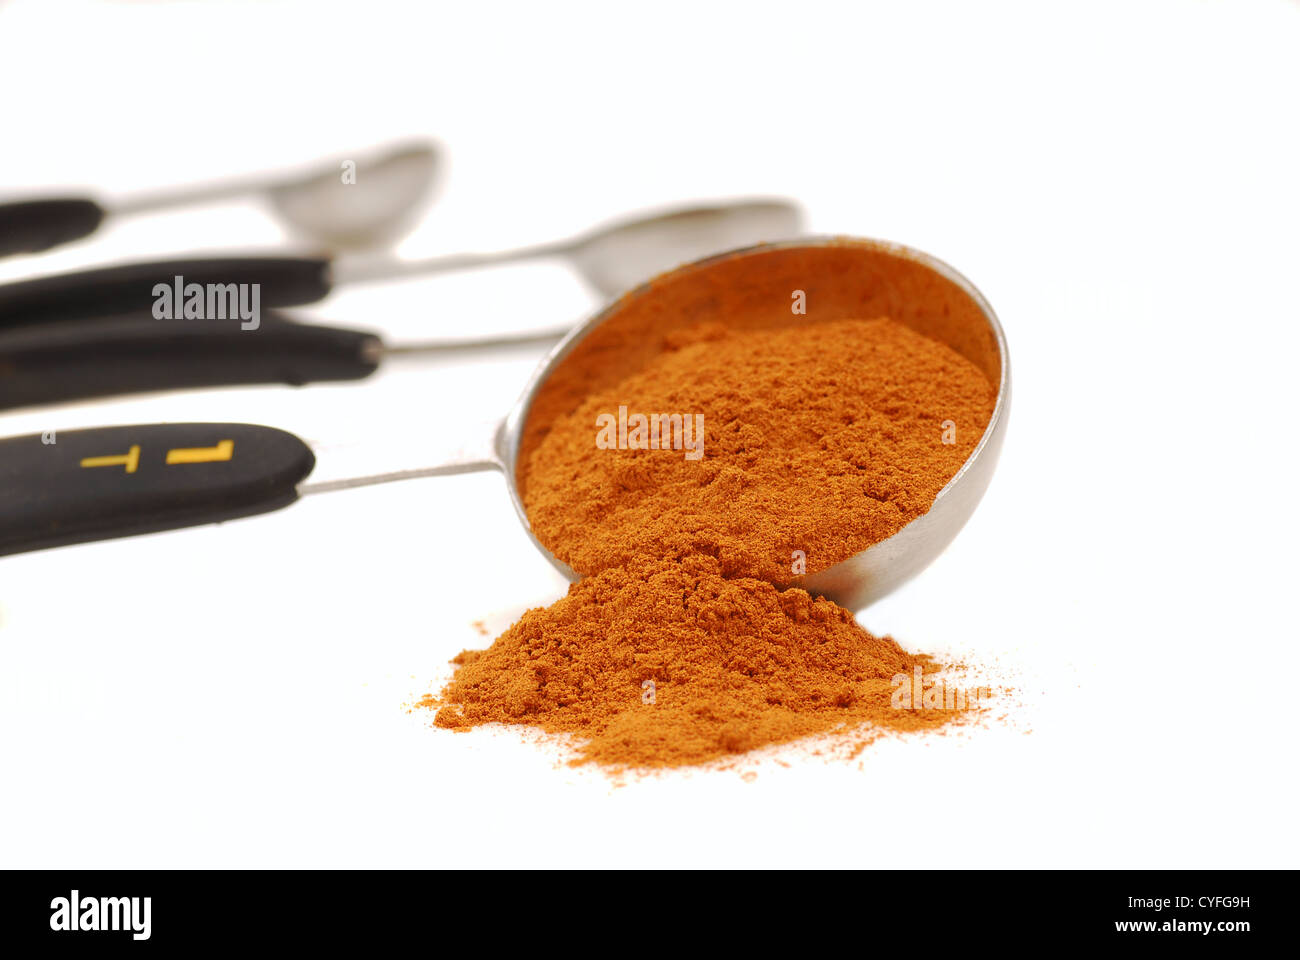 Freshly ground cinnamon spilling out of a measuring spoon. - Stock Image